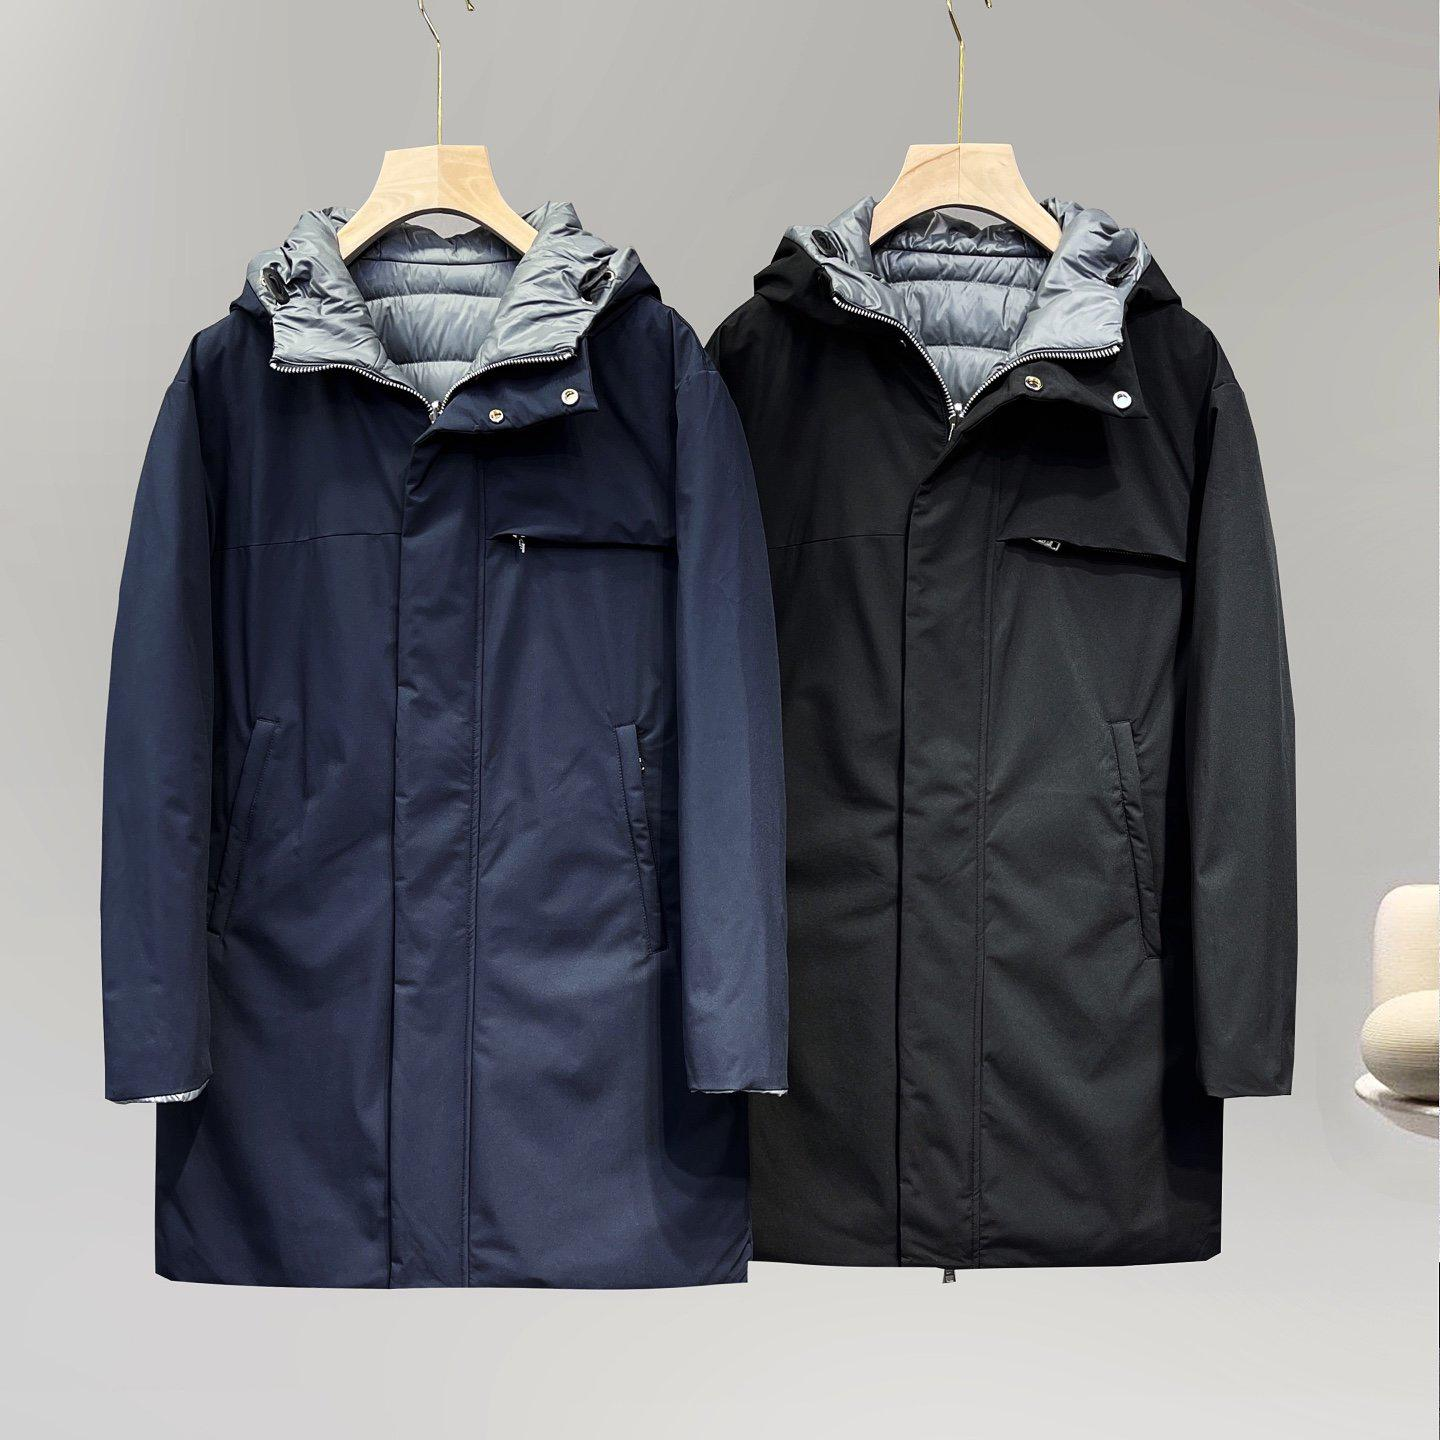 Italian Luxury P Double-sided Hooded Fabric Parka Casual Down Coats Mens Stylist Outdoor Warm Jacket High Quality Winter Coat Large Size